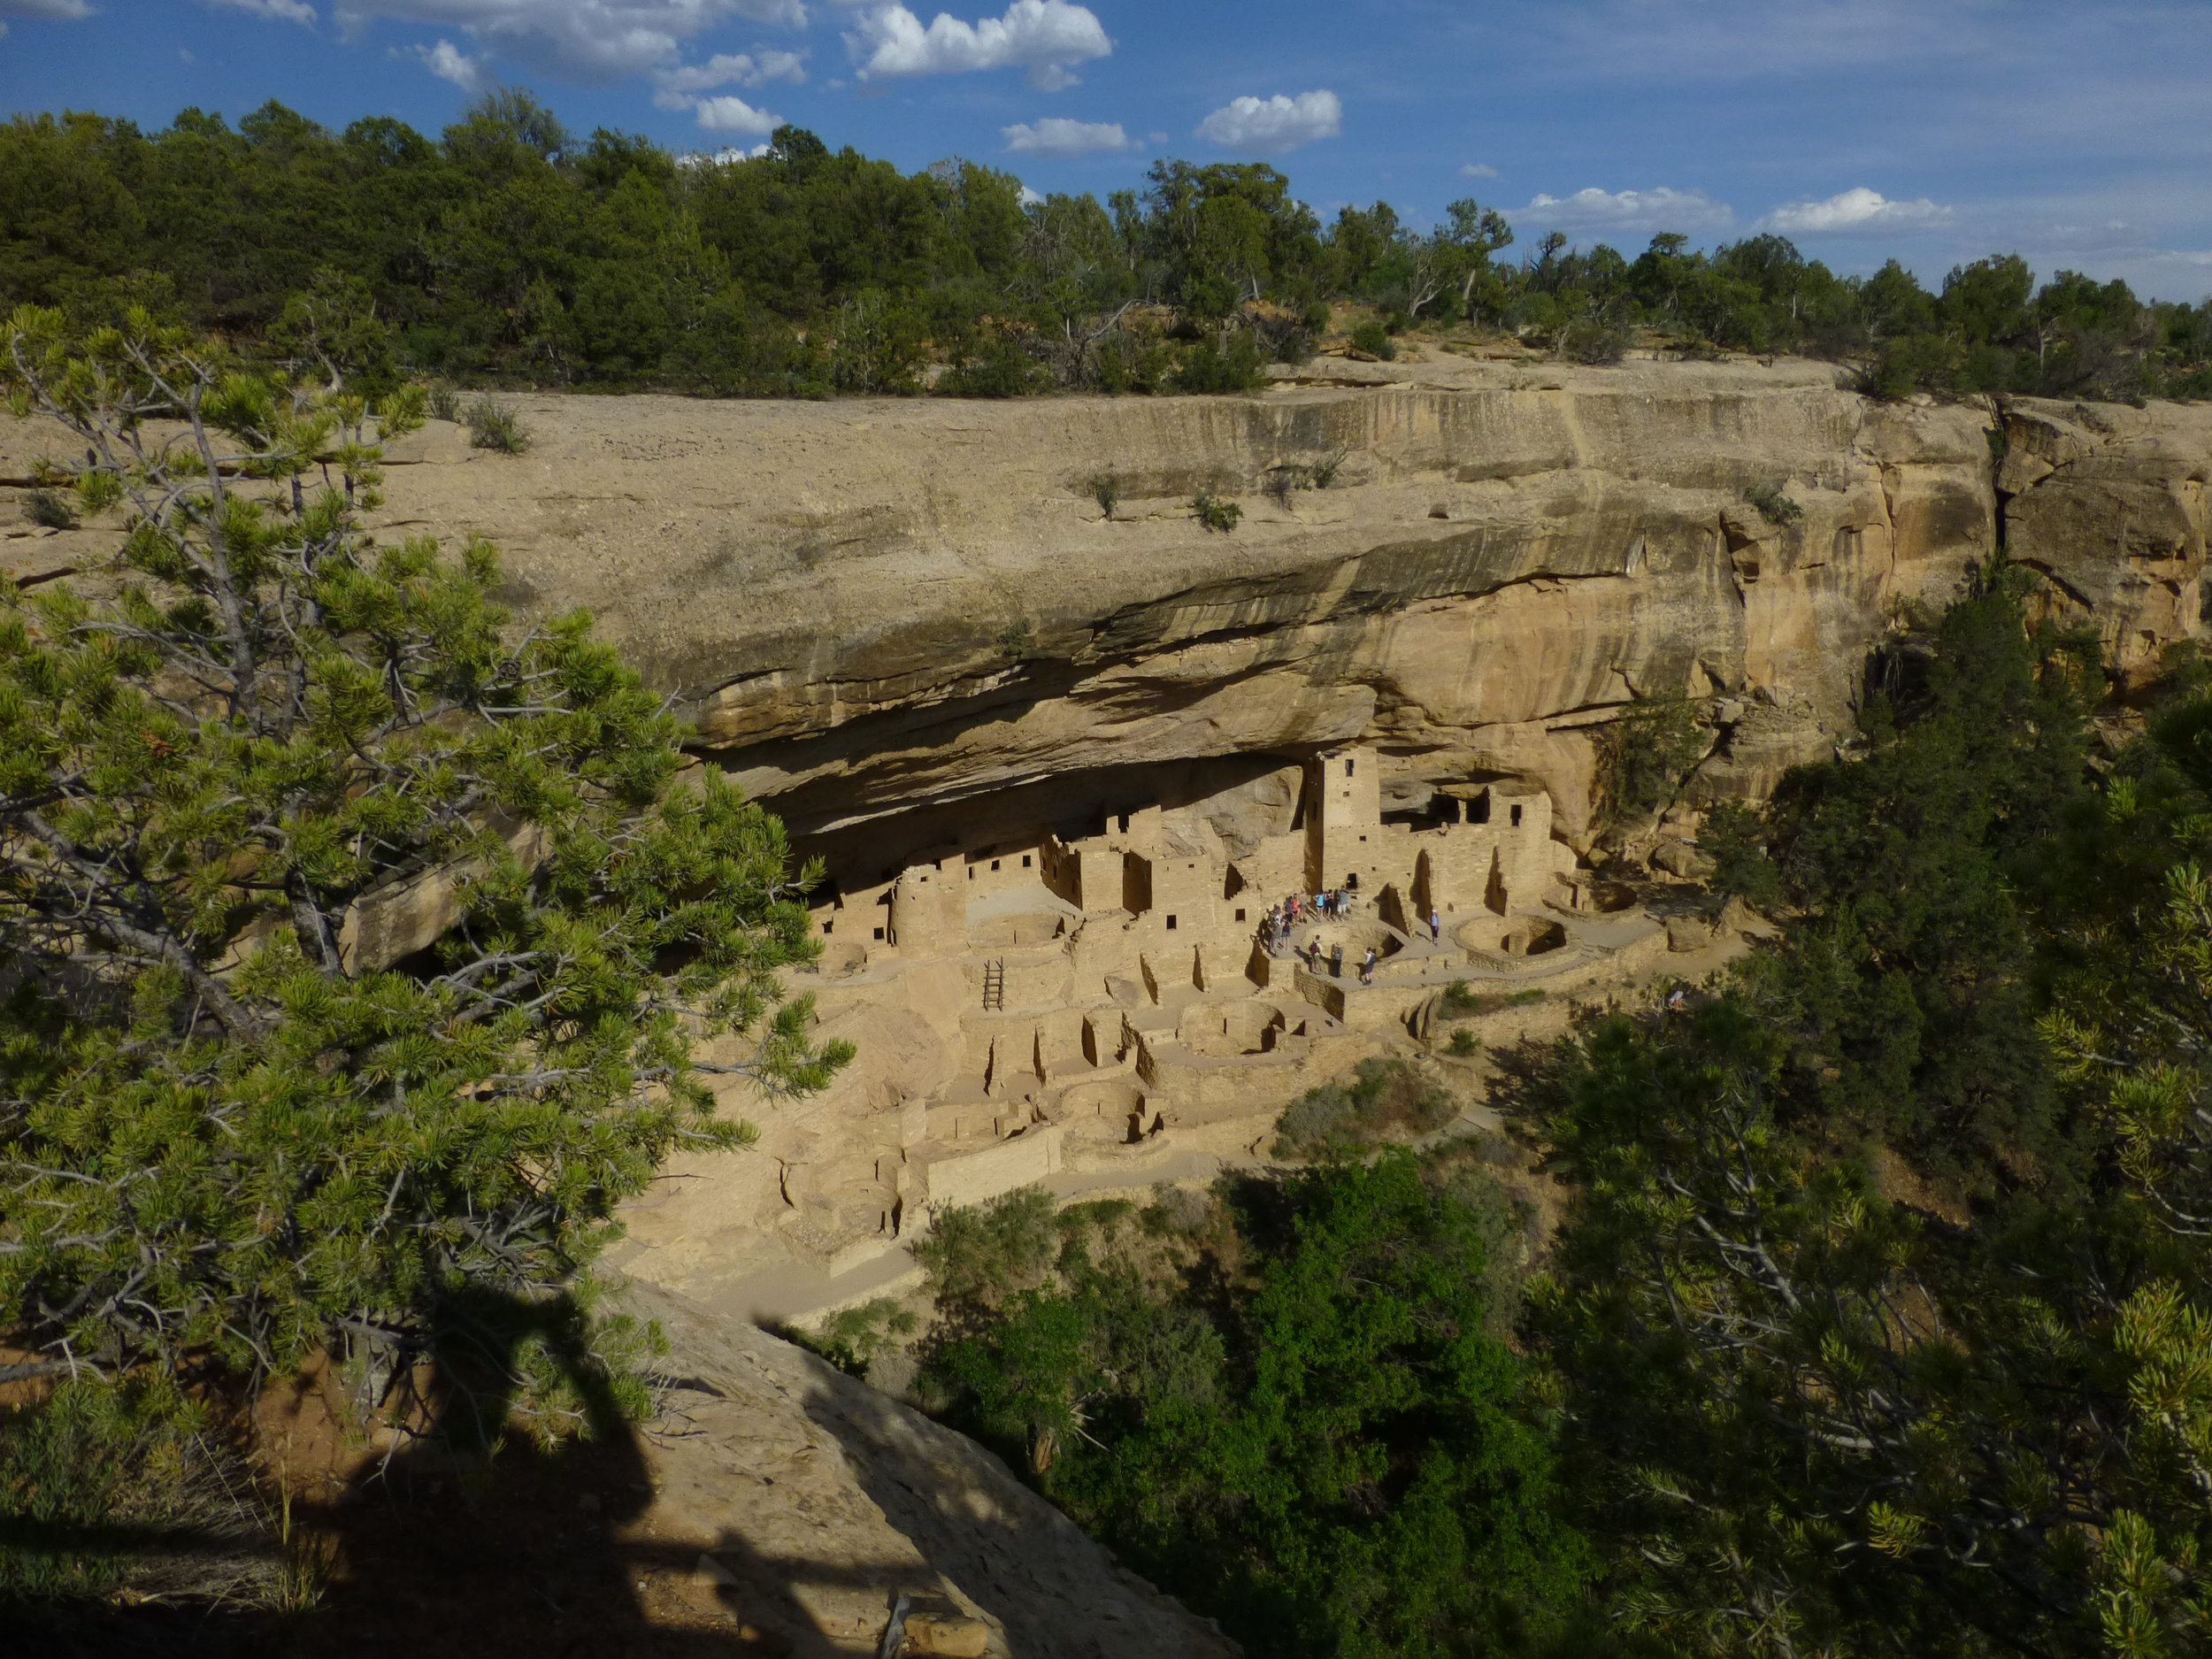 Cliff Palace, Mesa Verde National Park (cover photo as well)